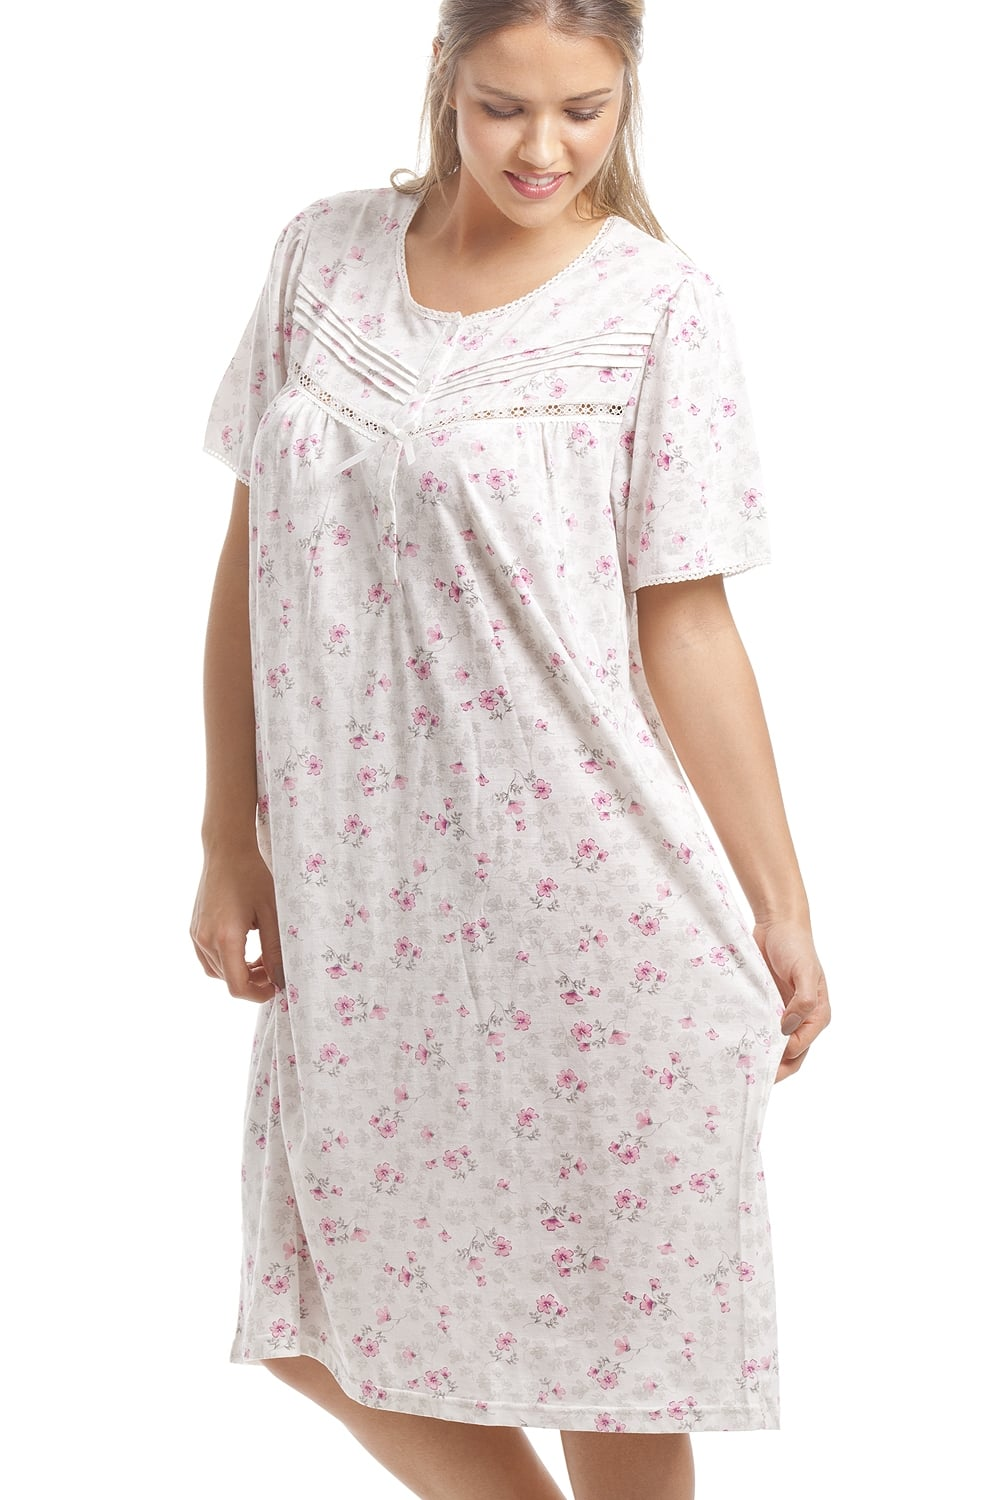 d8286918cb Camille Classic Pink Floral Print White Short Sleeve Nightdress